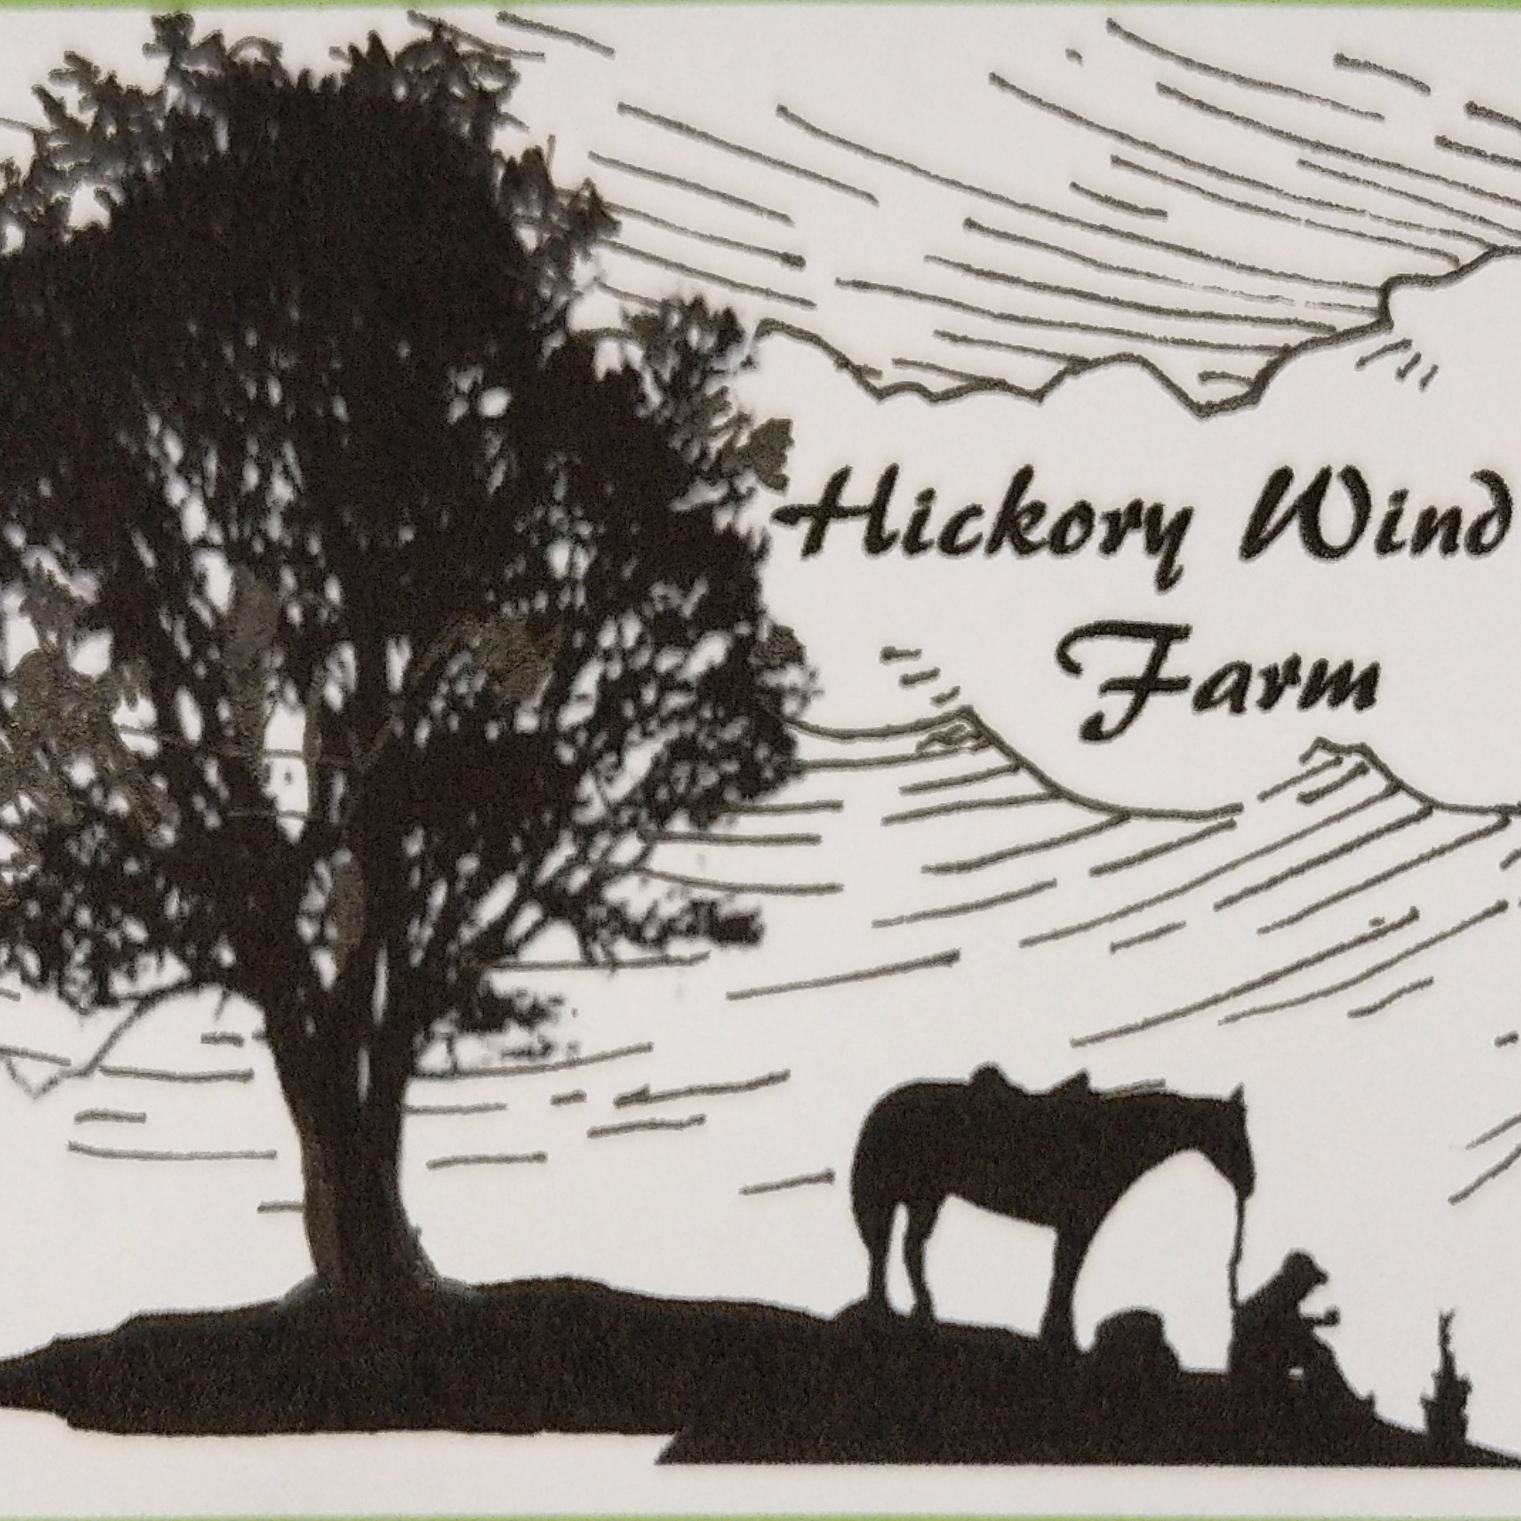 Hickory Wind Farm